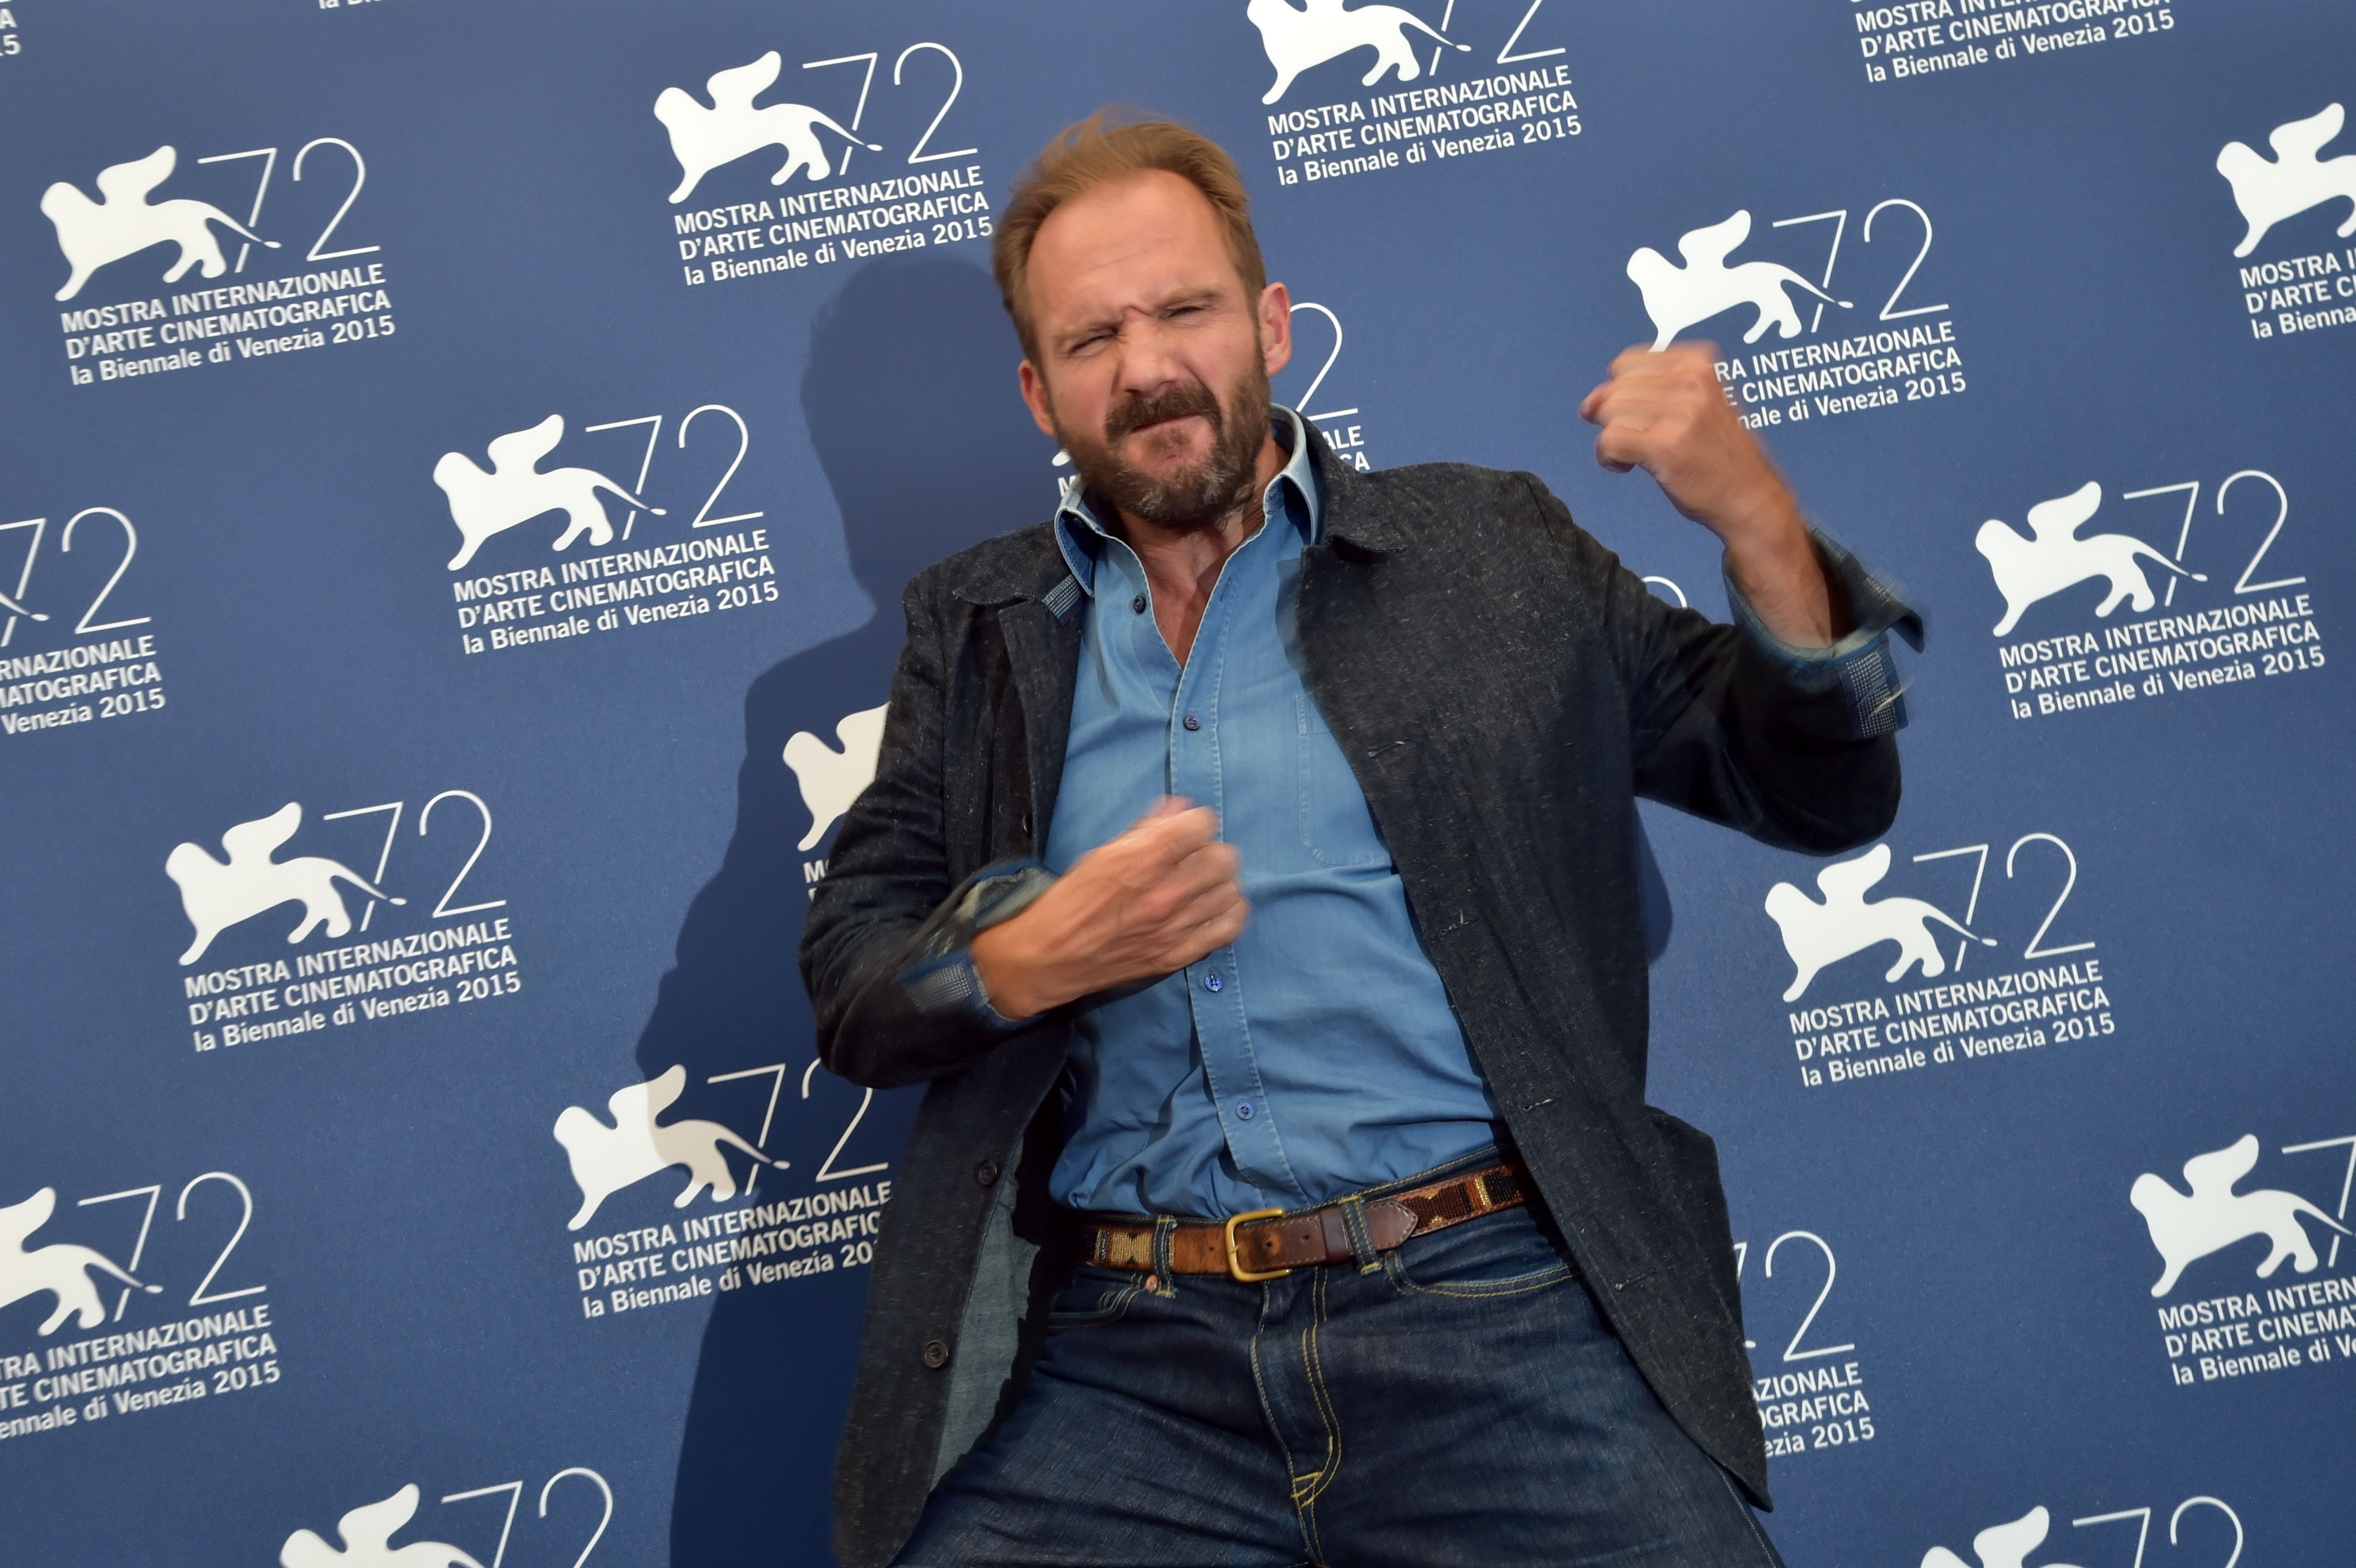 Voldemort was throwing some Fiennes shapes at Venice Film Festival